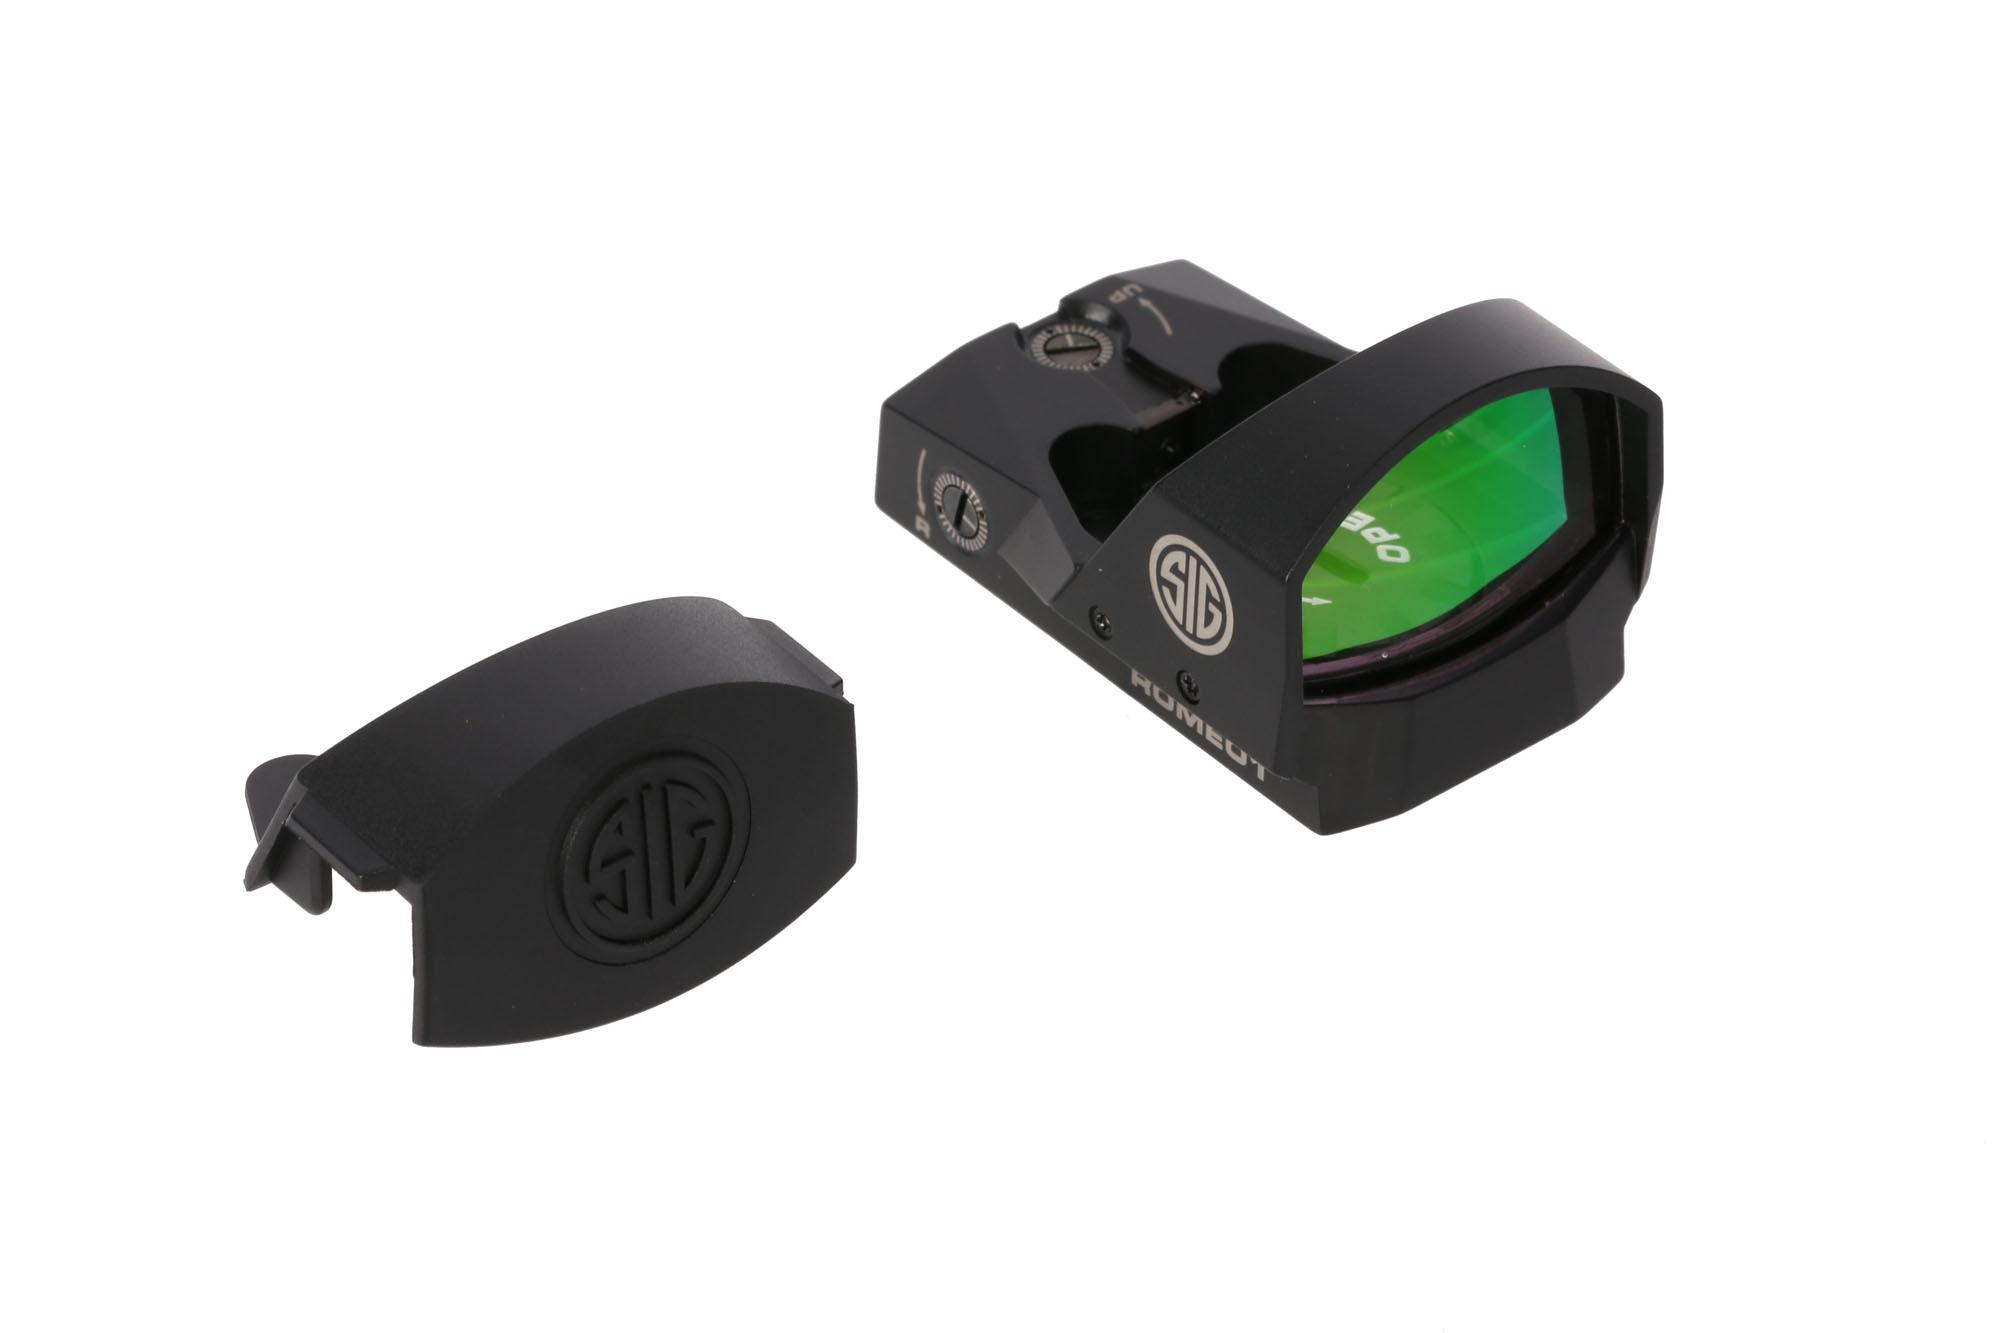 The sig sauer romeo 1 red dot sight comes with rubber lens cover